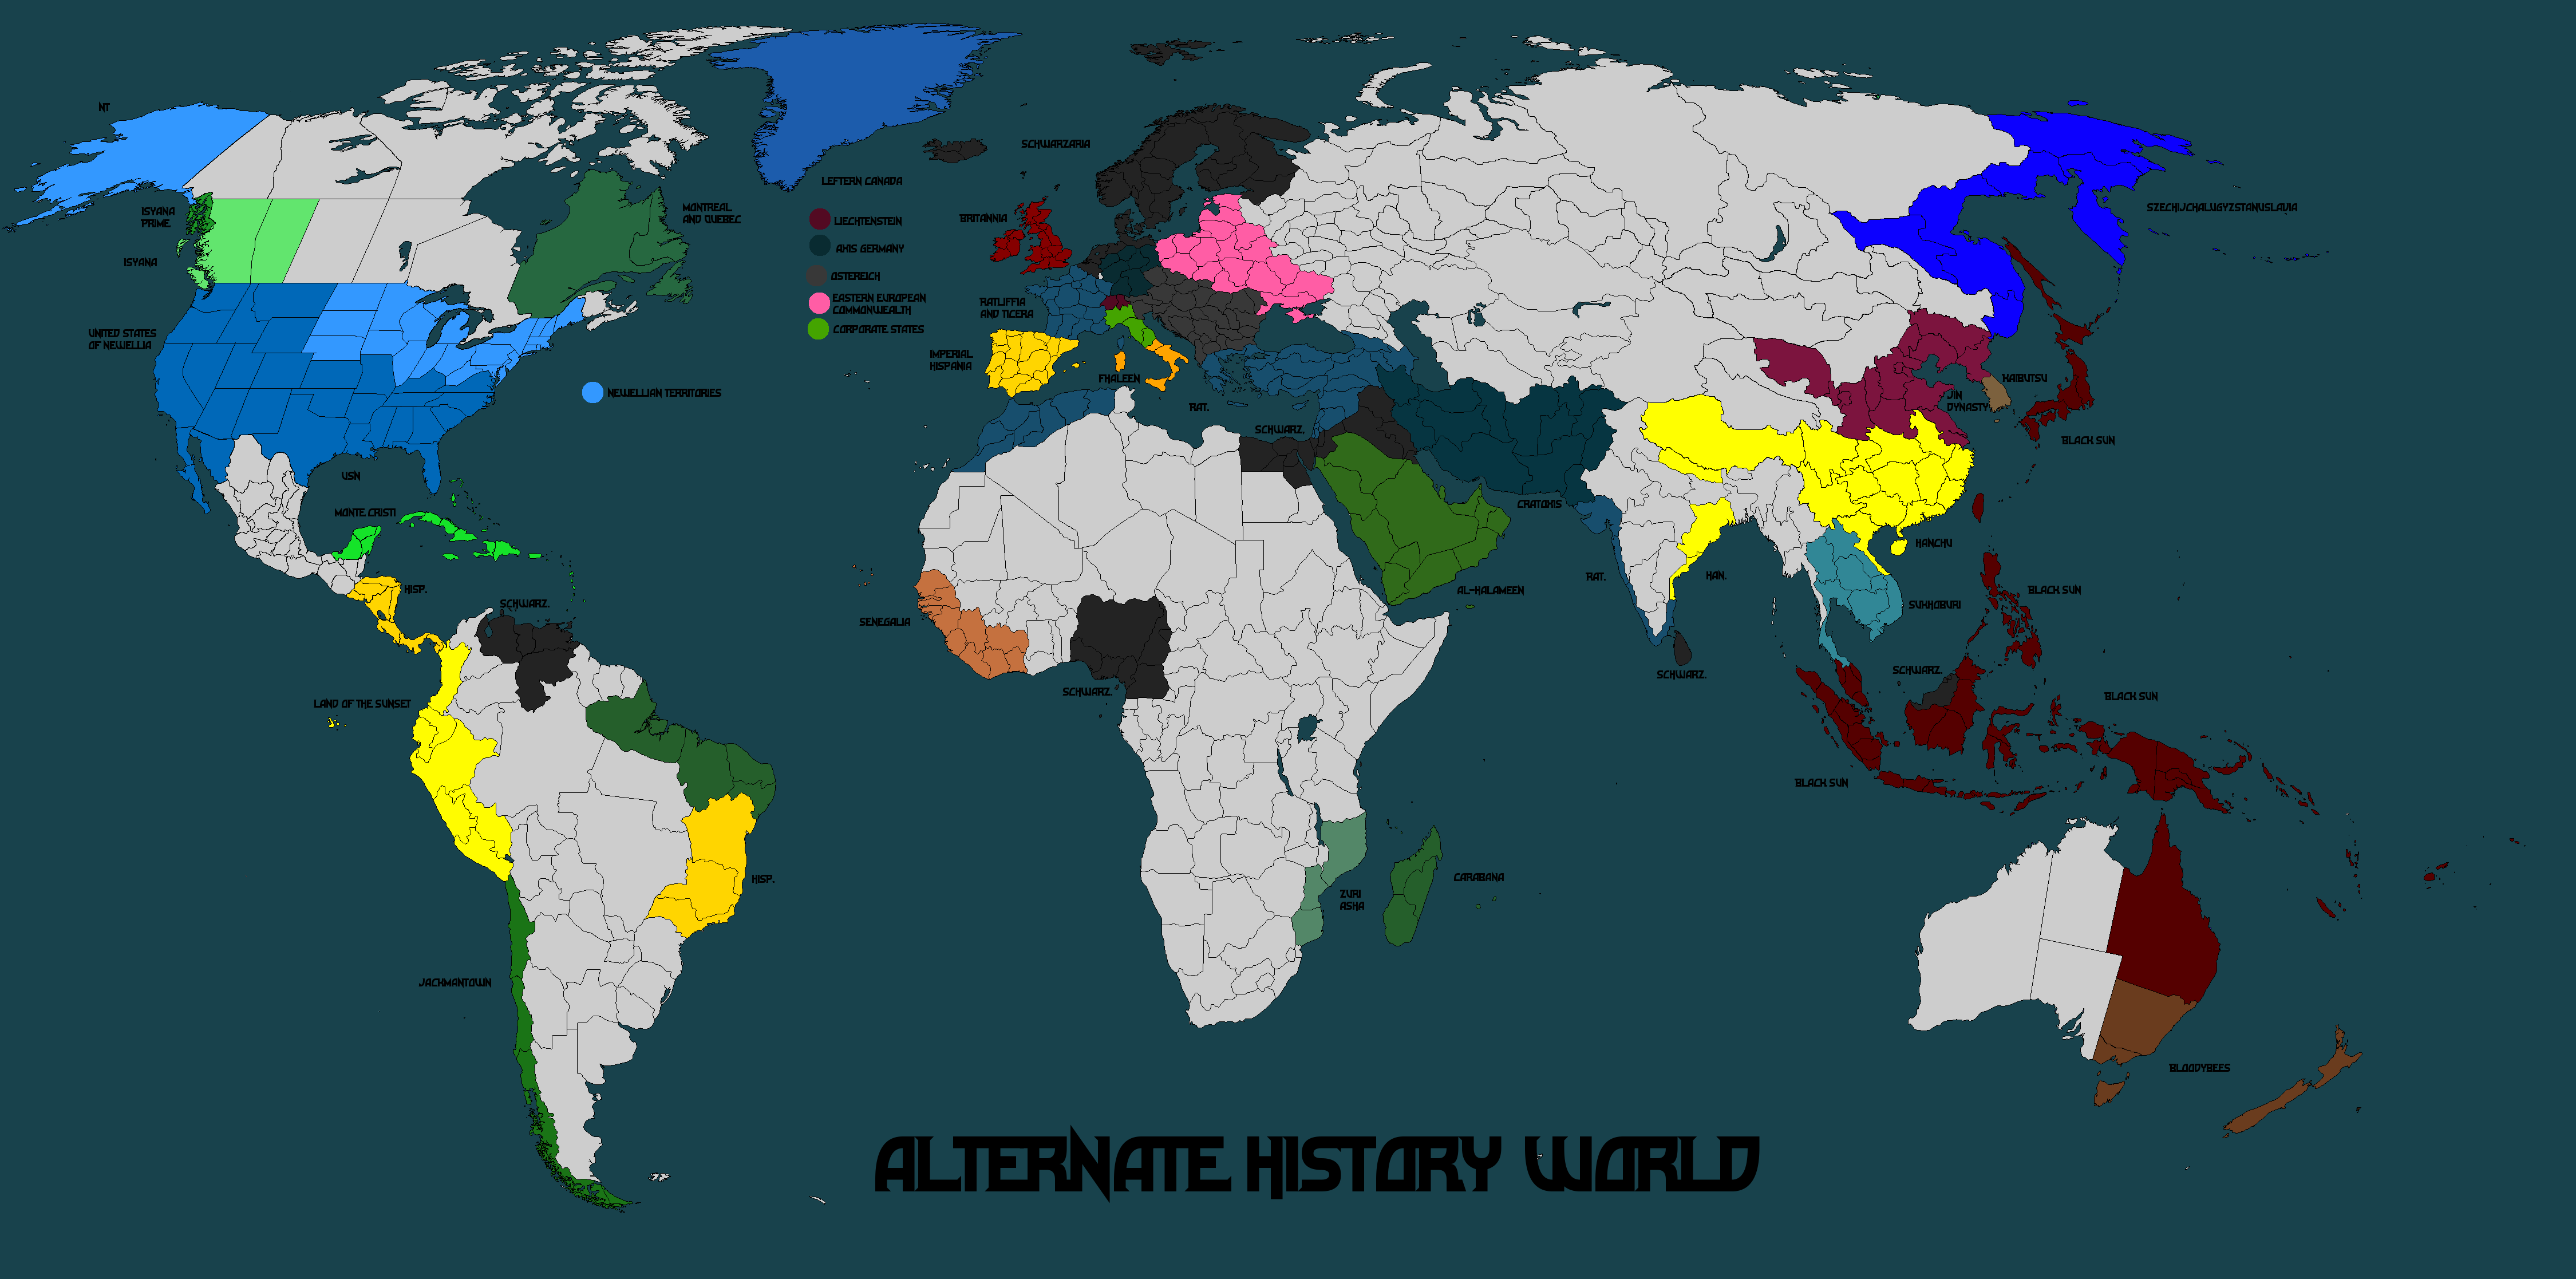 Alternate history world map mk 18 by norbertus1757 on deviantart alternate history world map mk 18 by norbertus1757 gumiabroncs Image collections